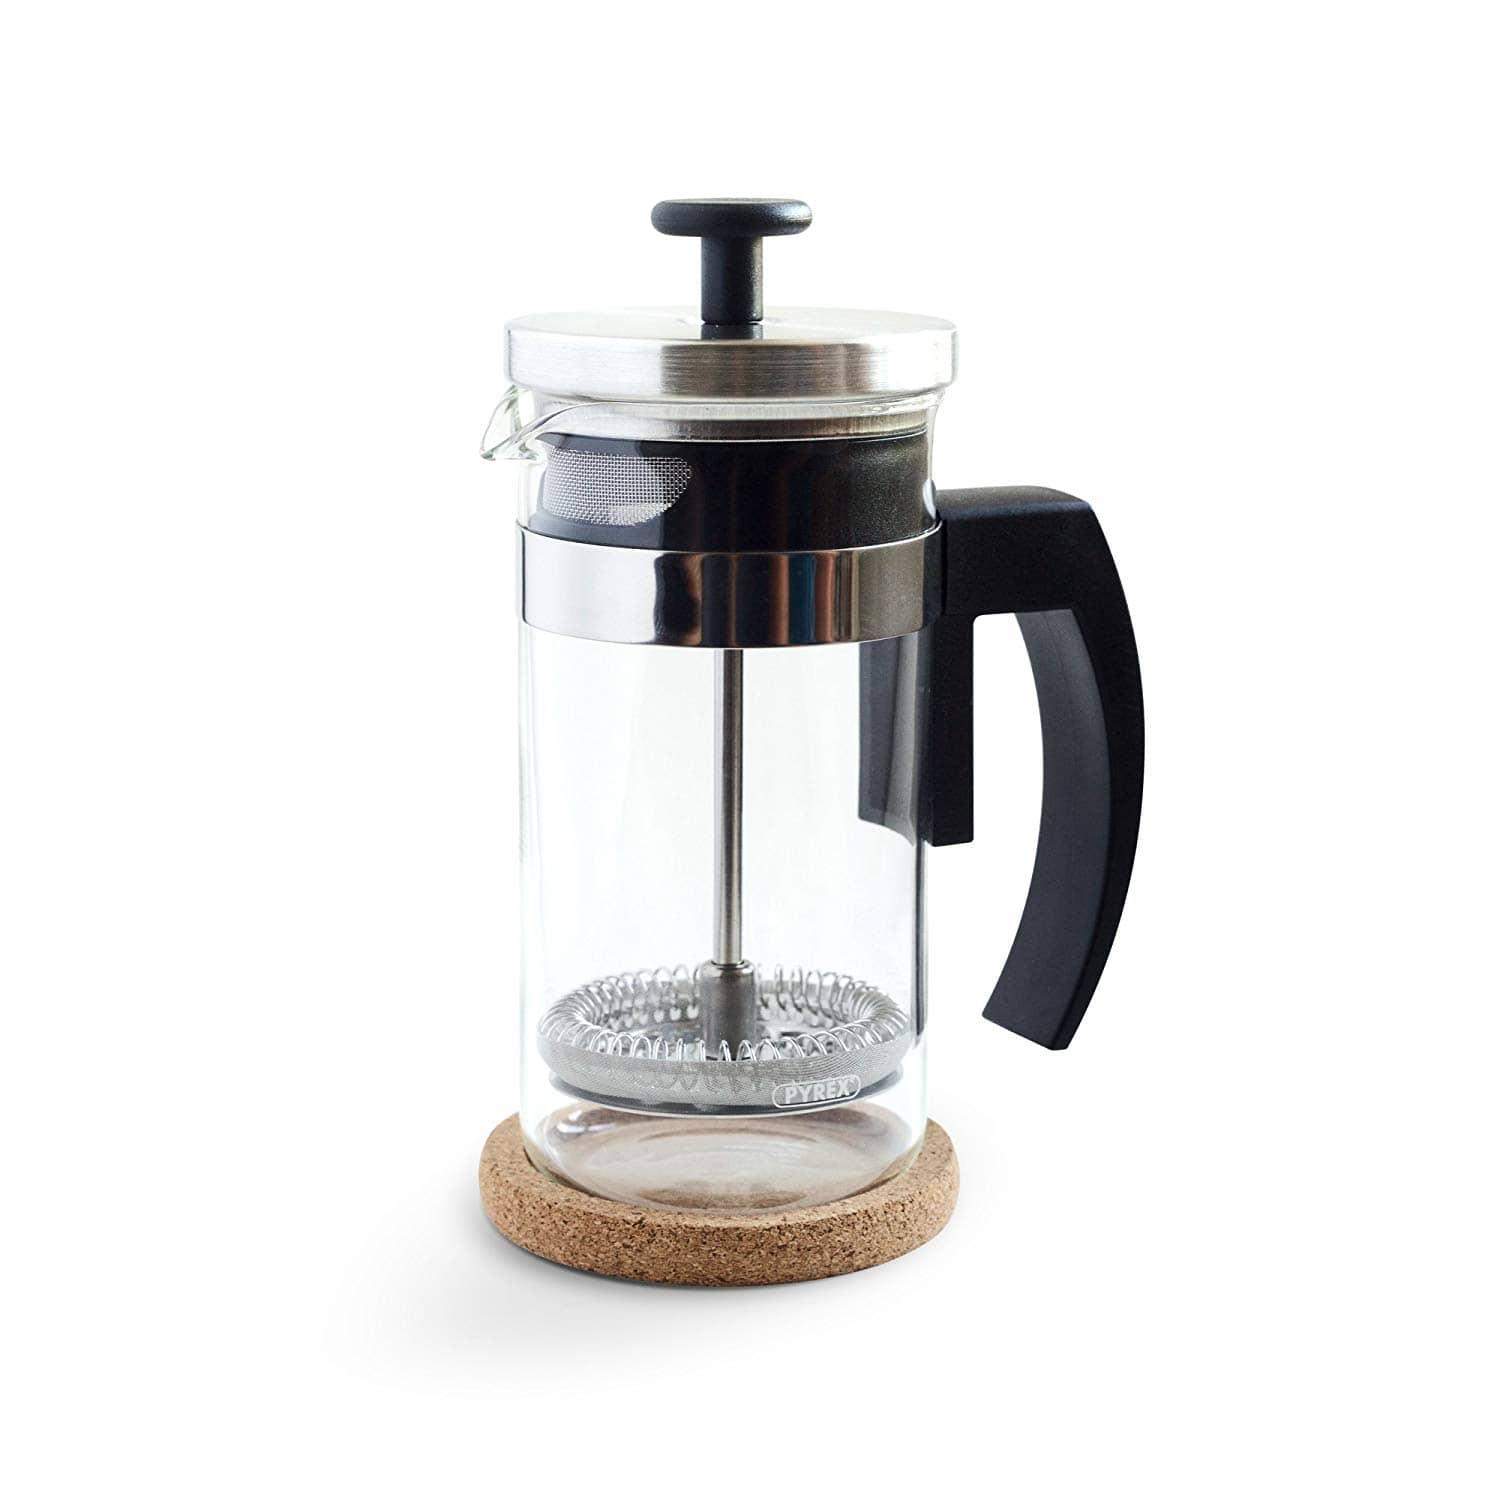 Amazon: 33% Off Small 12oz French Press Coffee Maker - $19.90 (Prime Eligible)